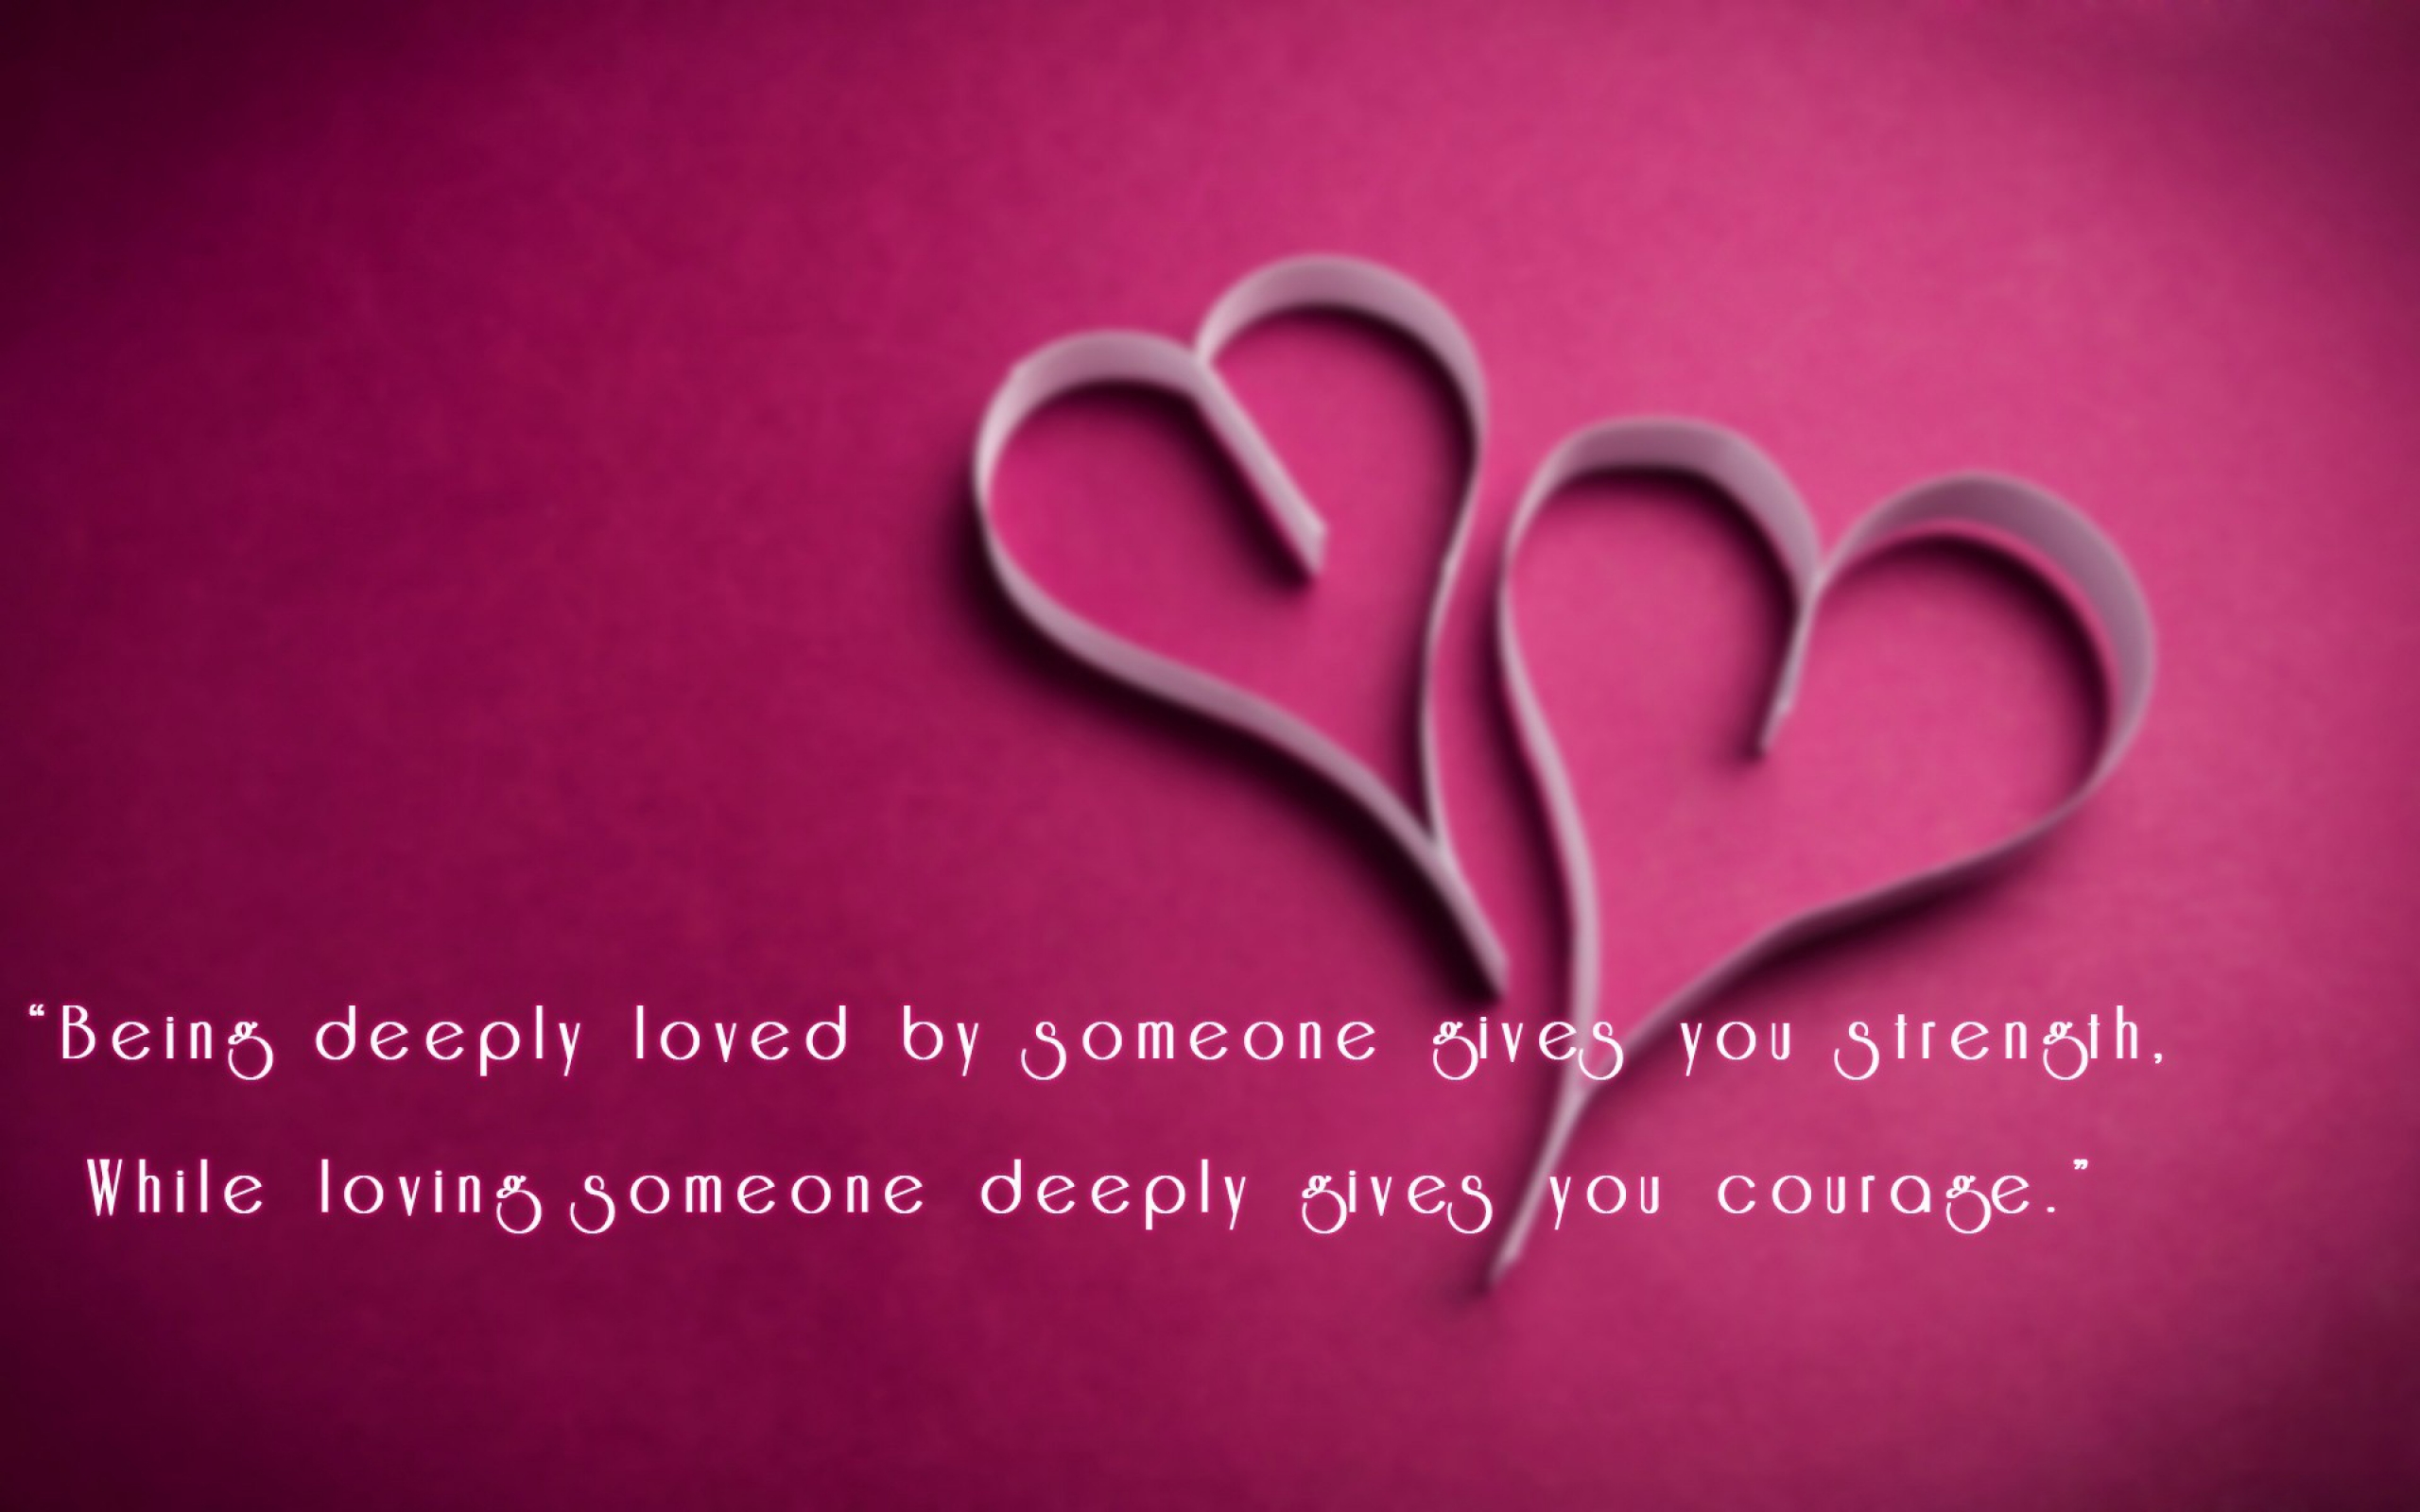 Cool Love Quote Desktop Wallpaper